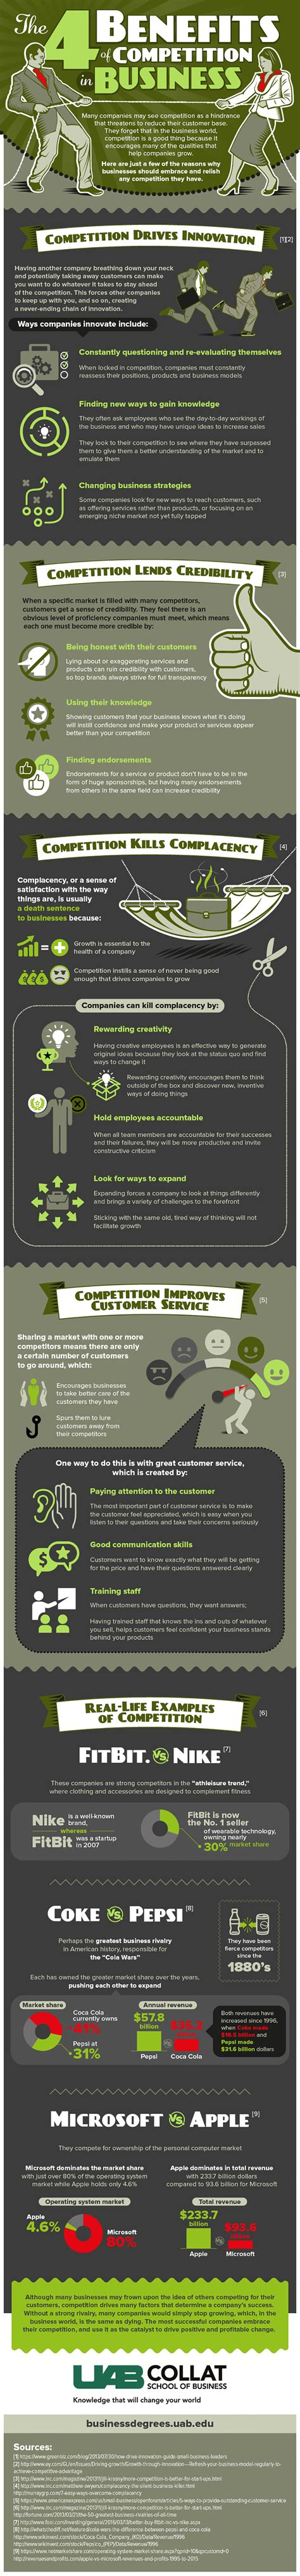 Beniefits Of School Vs Mba by Benefits Of Competition In Business Uab Degrees